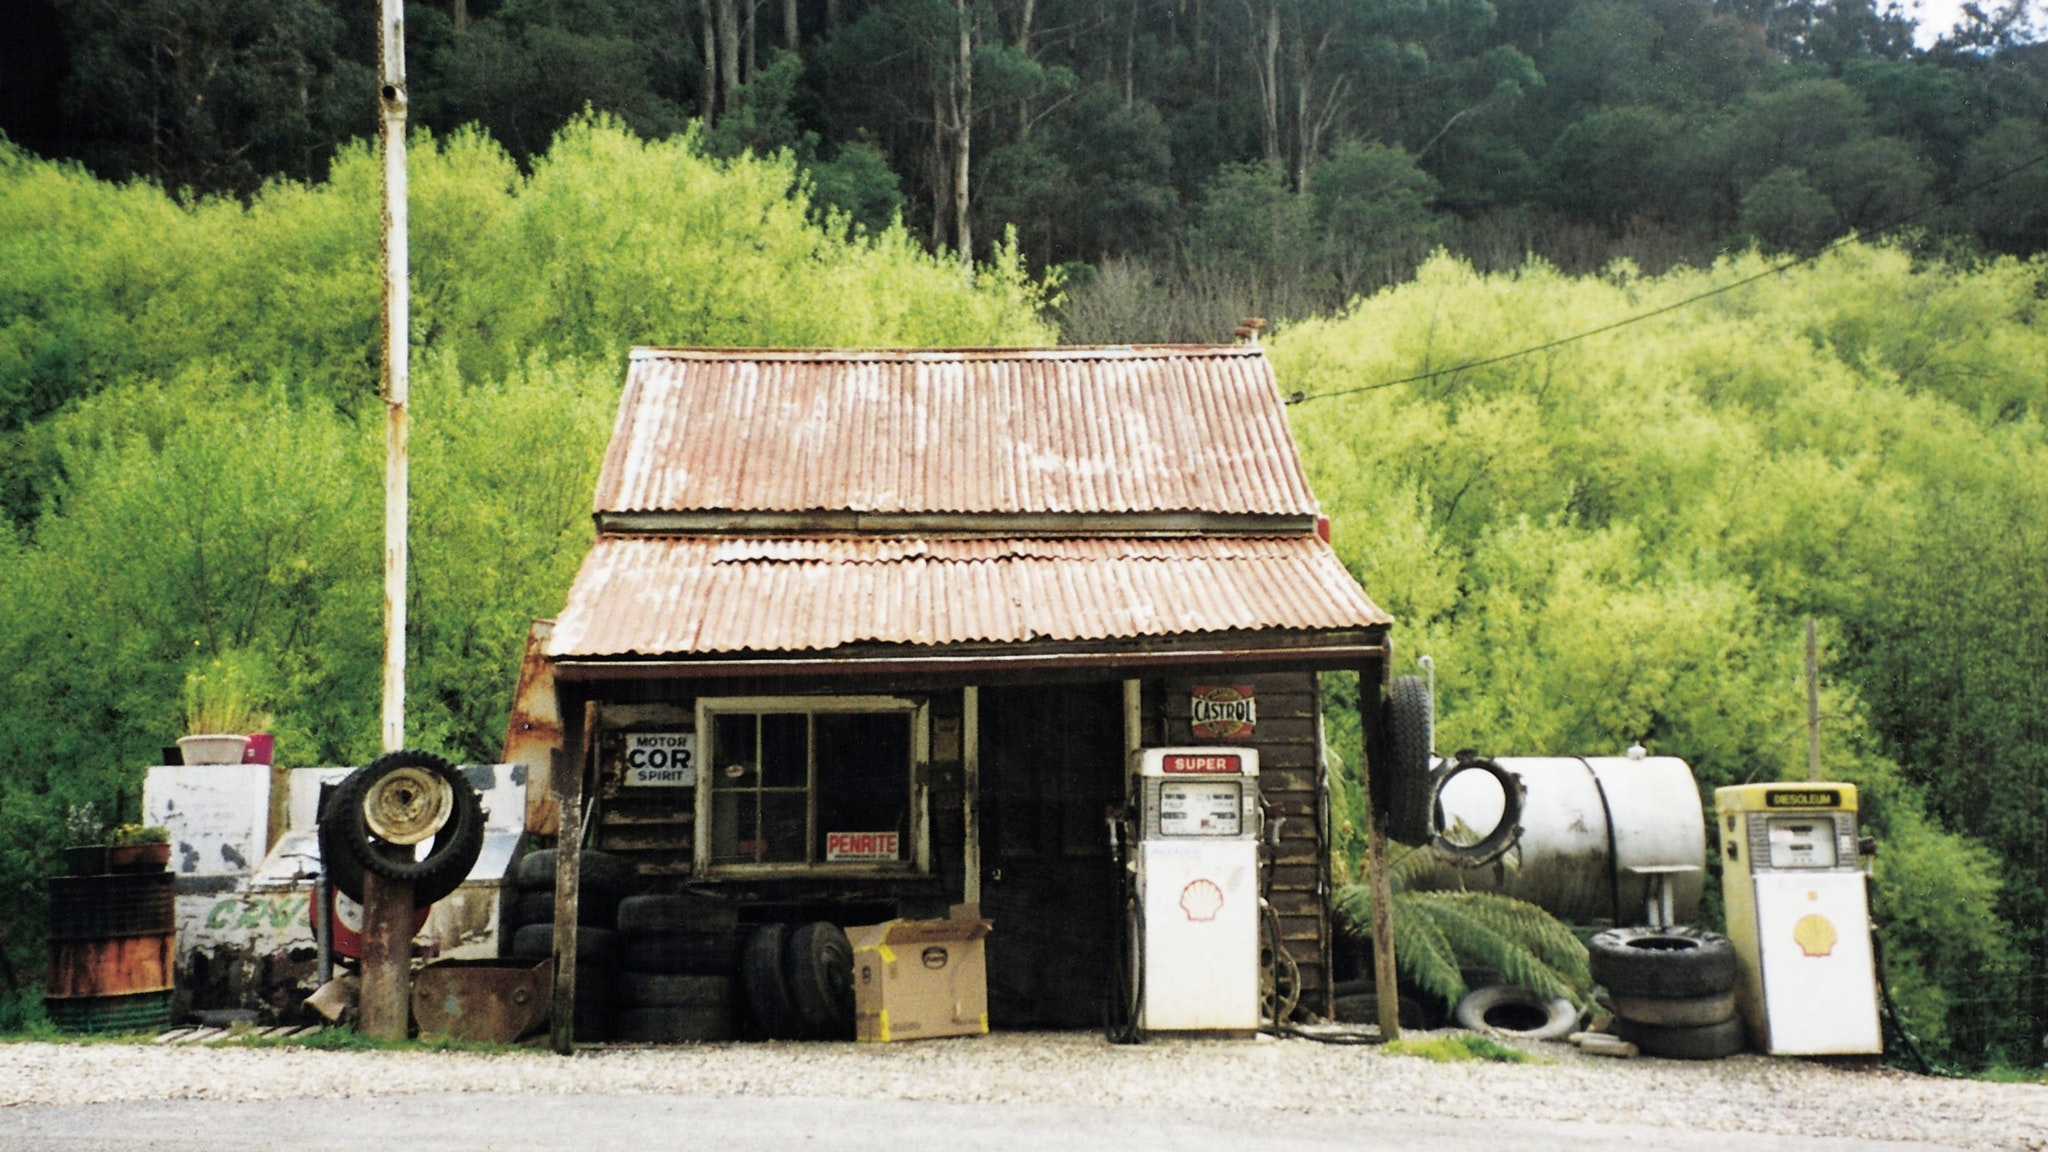 Woods Point Petrol Station